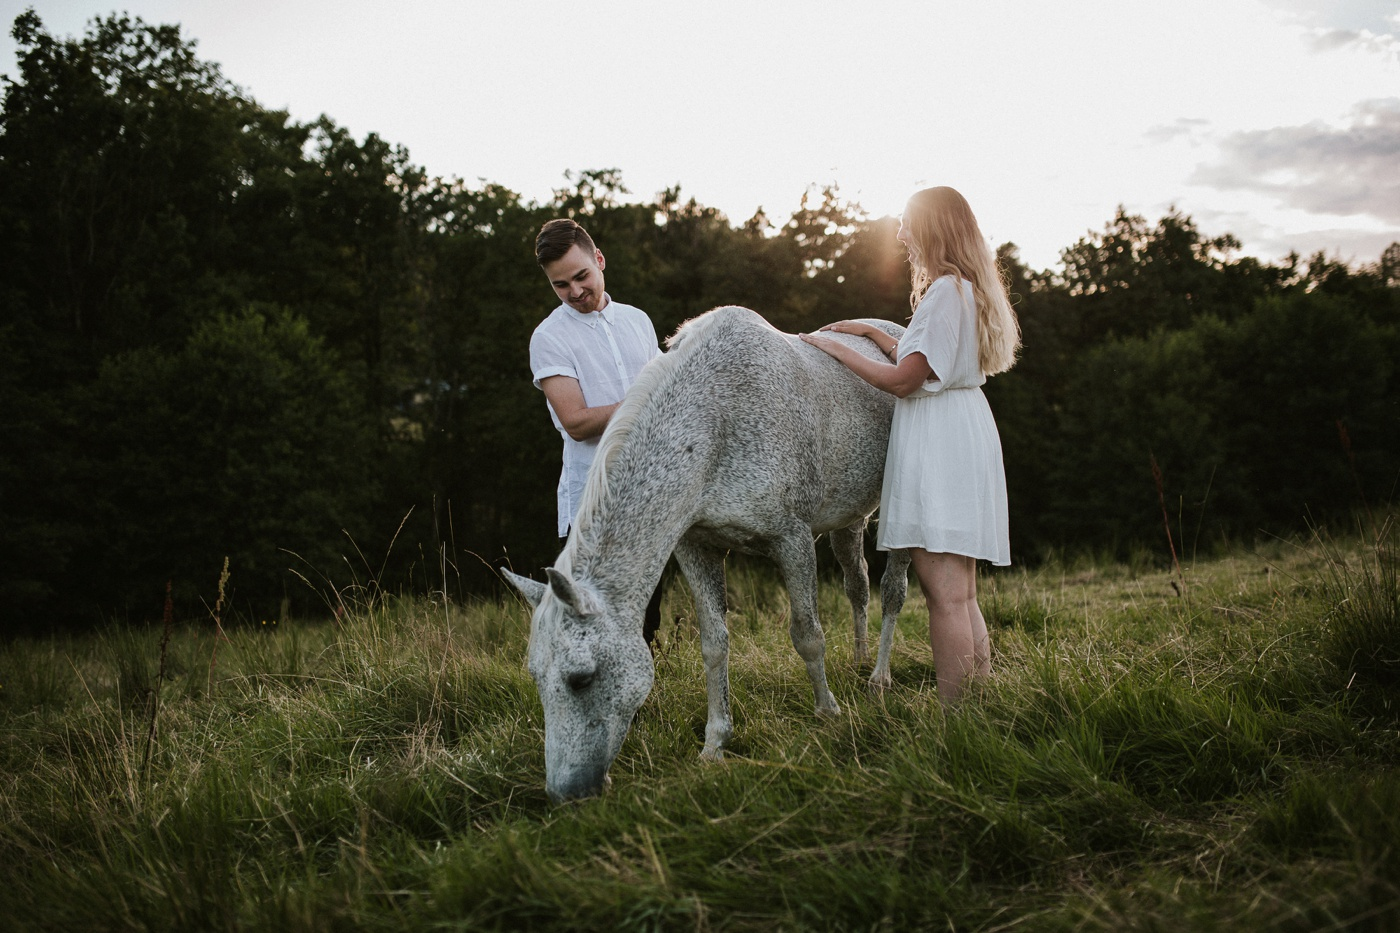 natalie-wictor_swedish-relaxed-candid-quirky-fun-engagement-session_9